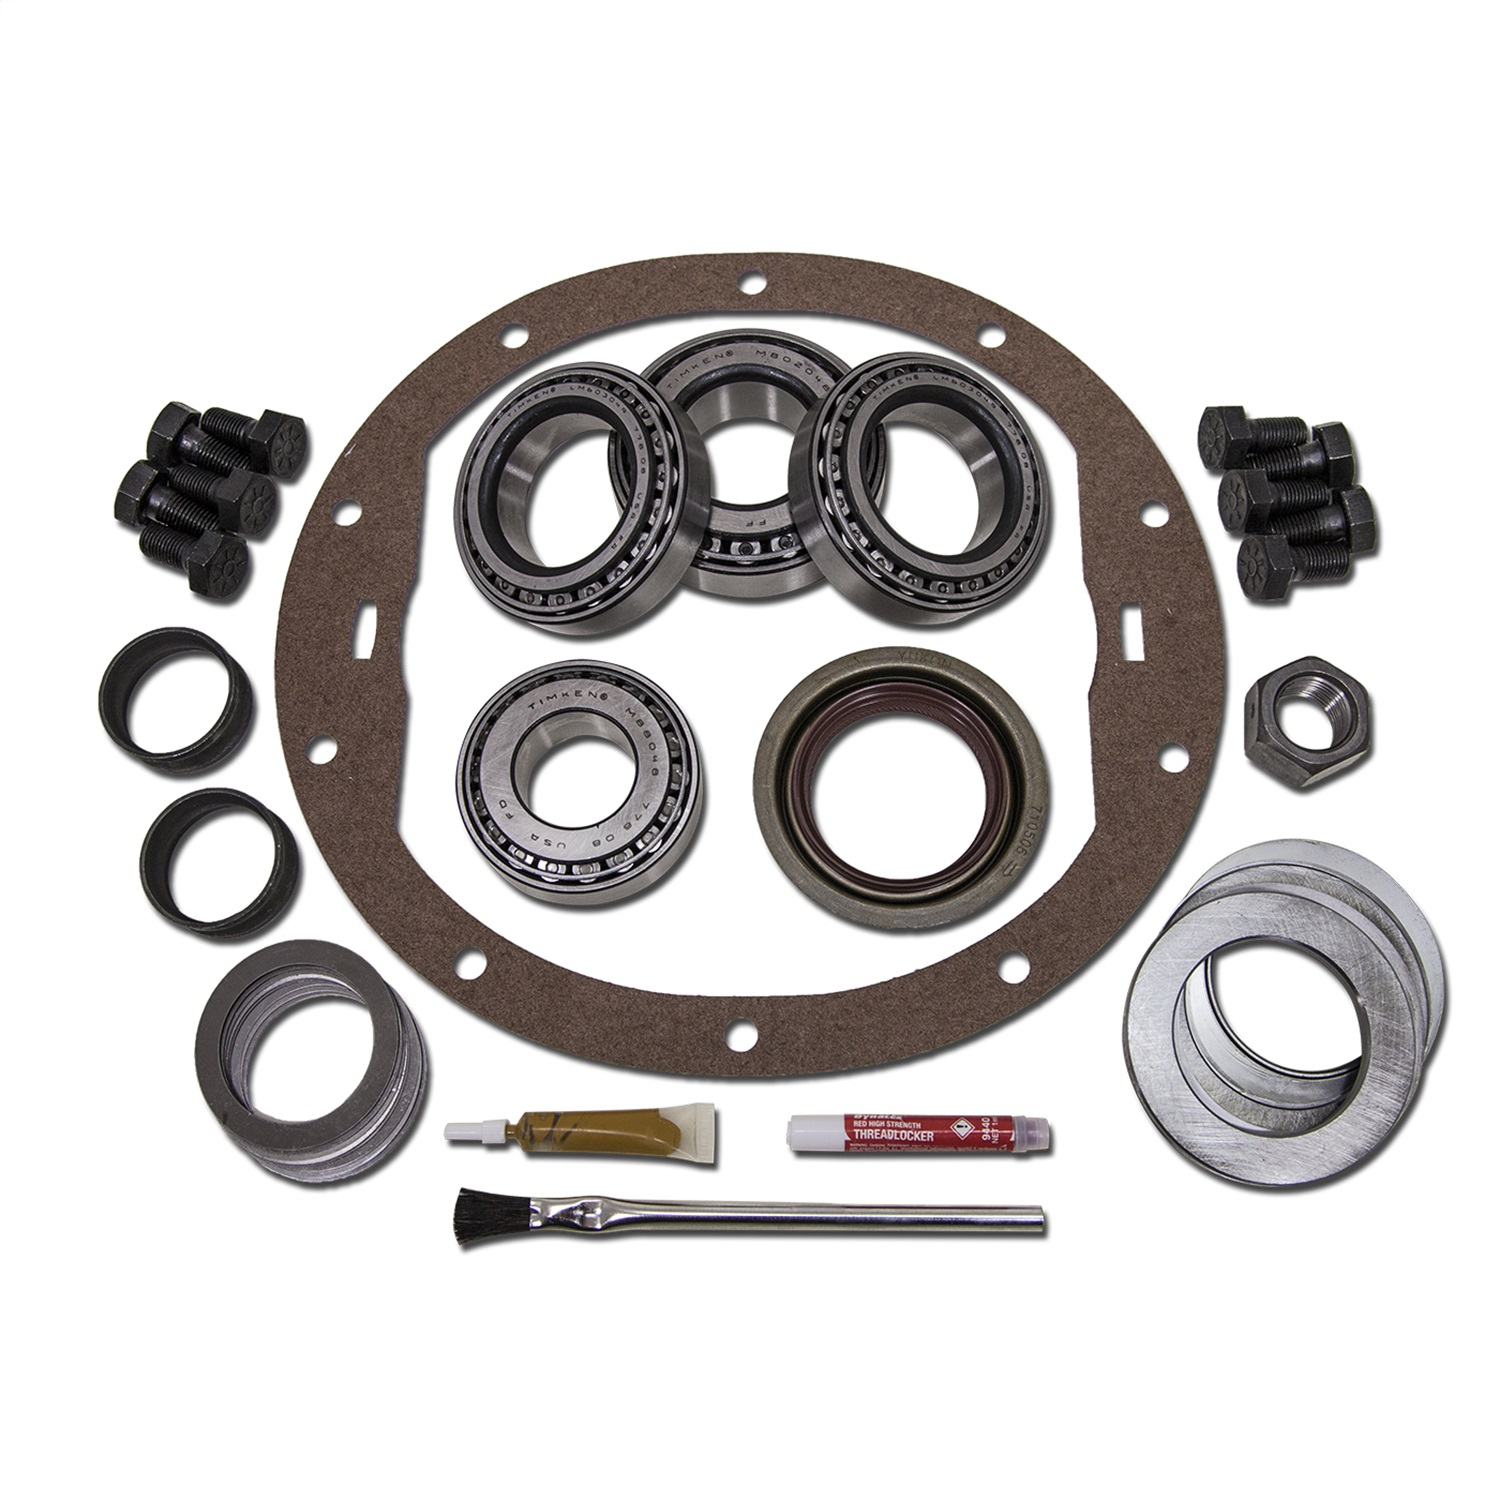 Yukon Gear YK GM8.6-A Master Kit Differential Ring and Pinion Installation Kit - image 1 de 1